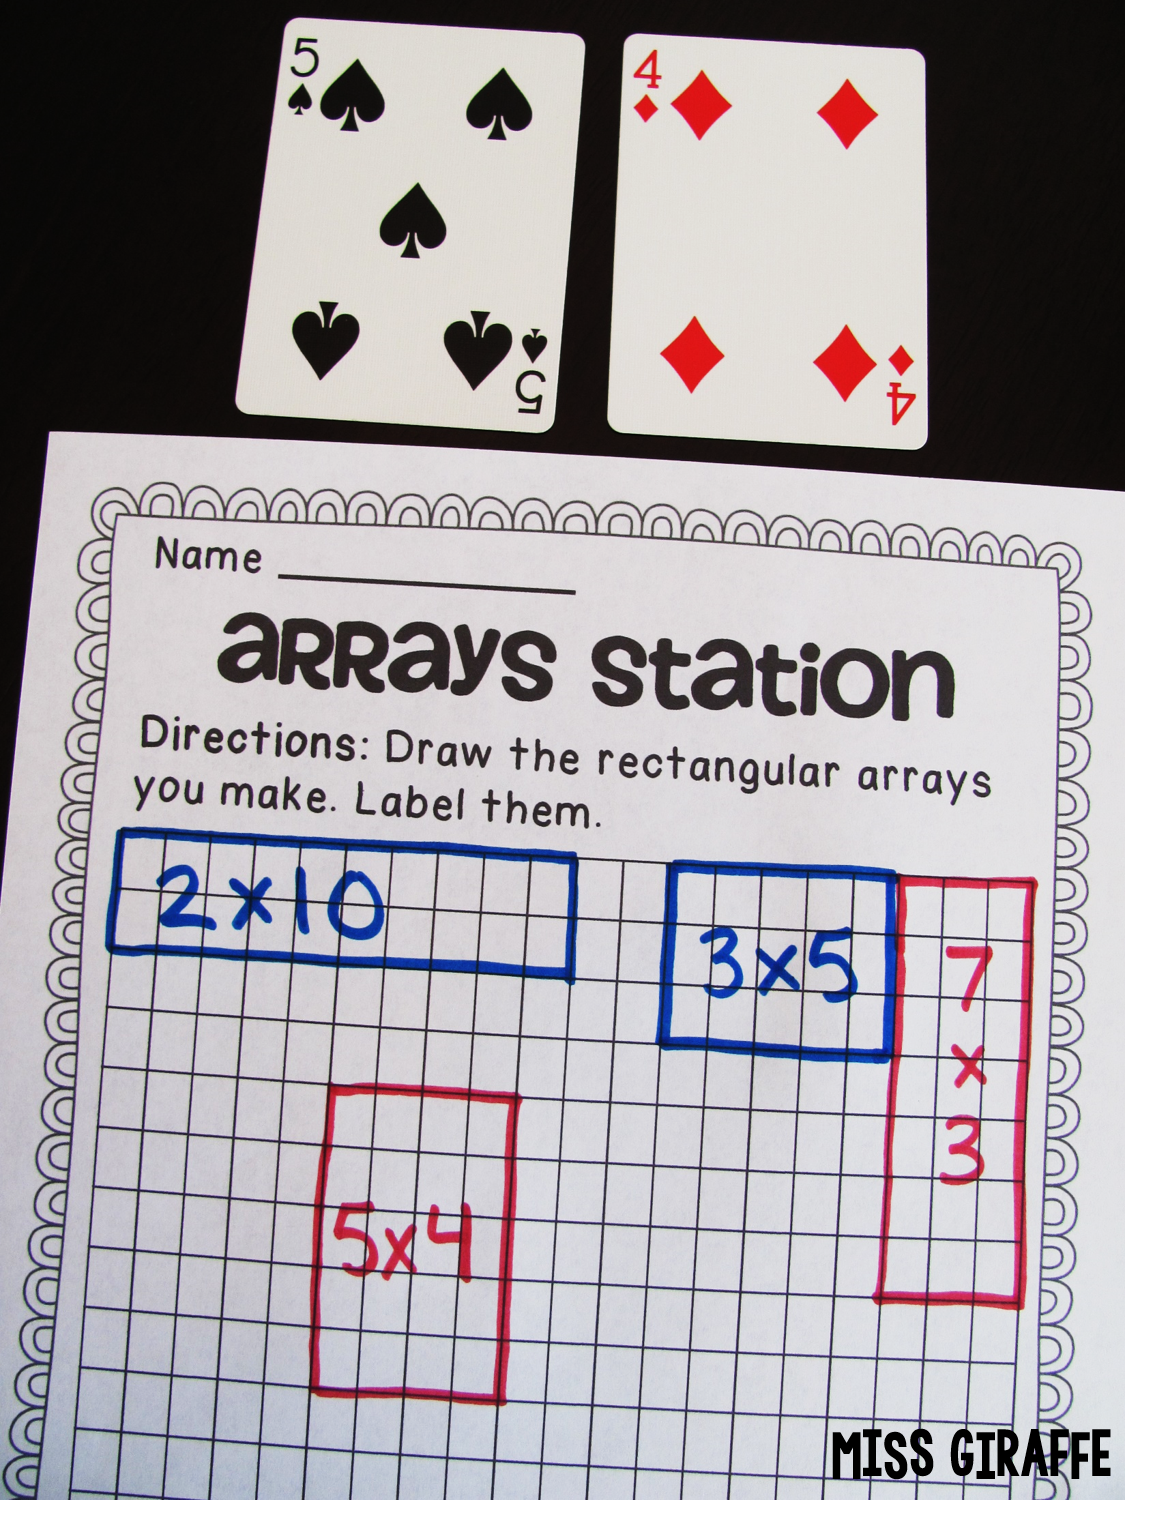 I Love Learning About Arrays Because They Are So Visual